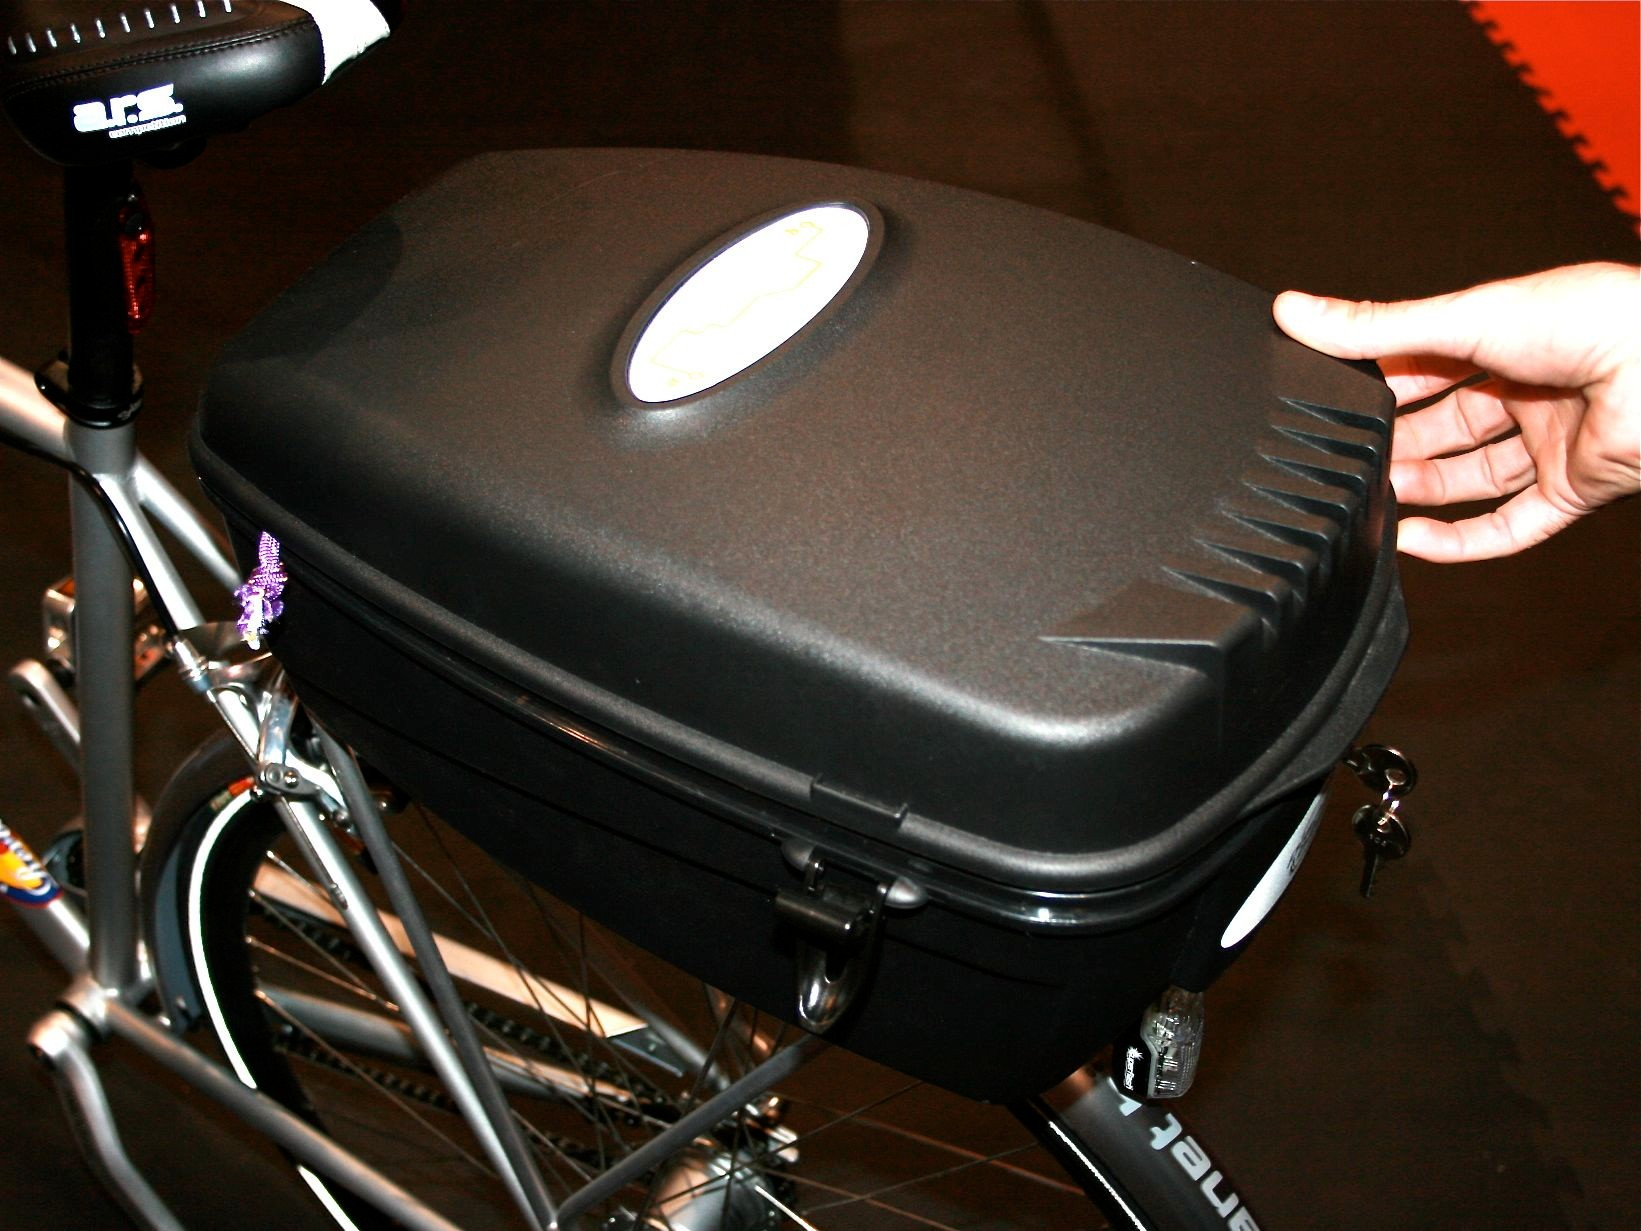 Planet Bike adds the Escape Pod rear rack cargo box to its commuter friendly line.